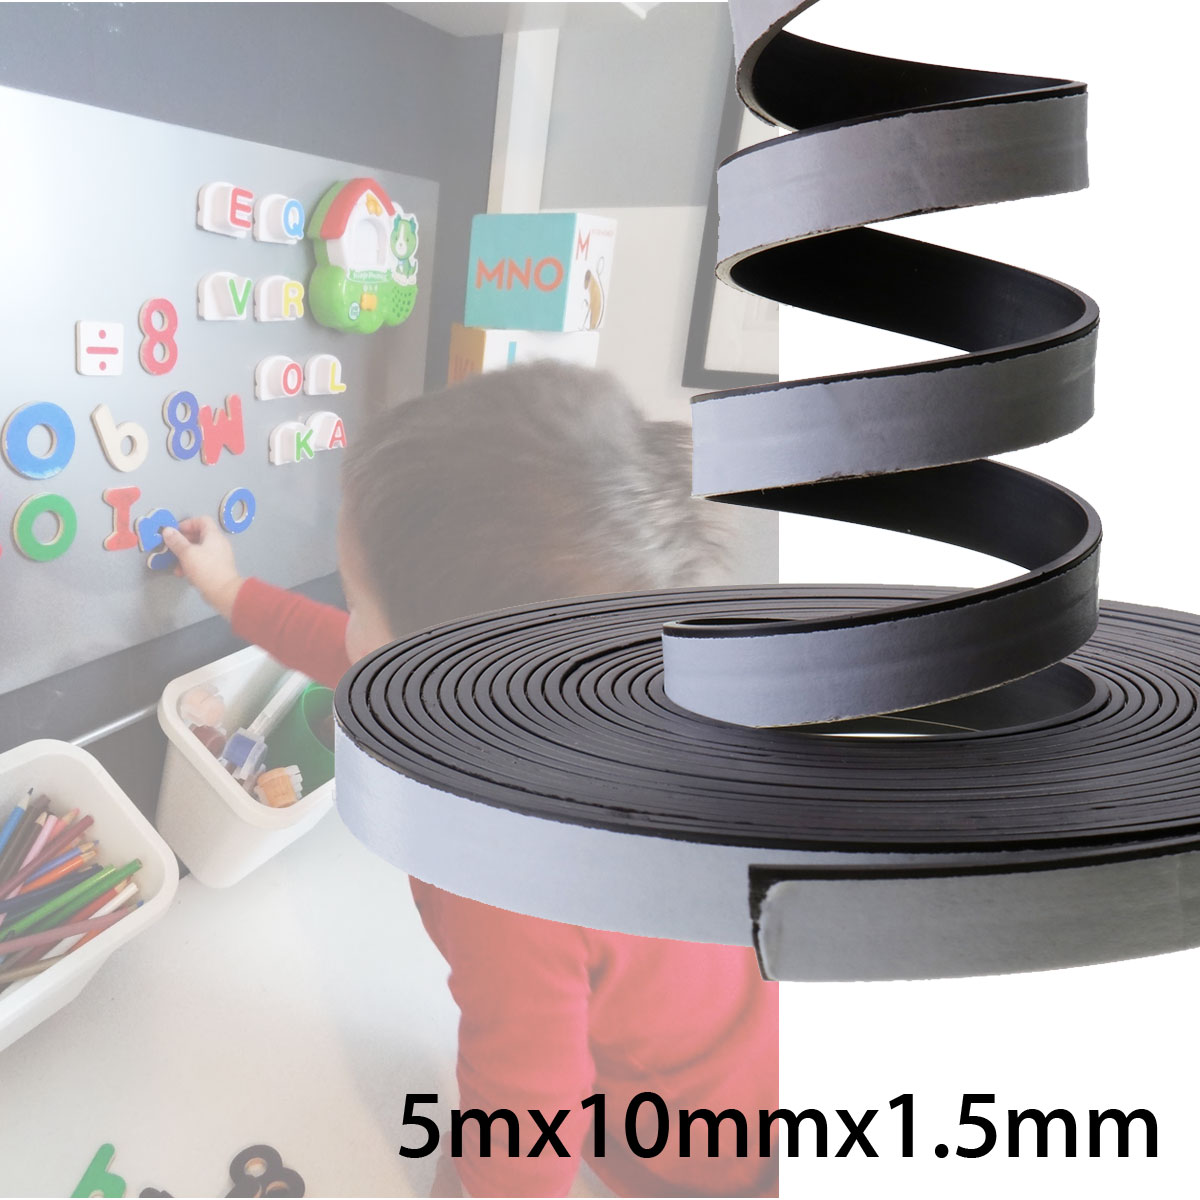 5M Self Adhesive Flexible Soft Rubber Magnetic Tape Magnet DIY Craft Strip Rolls 3080 00 craft tool strip